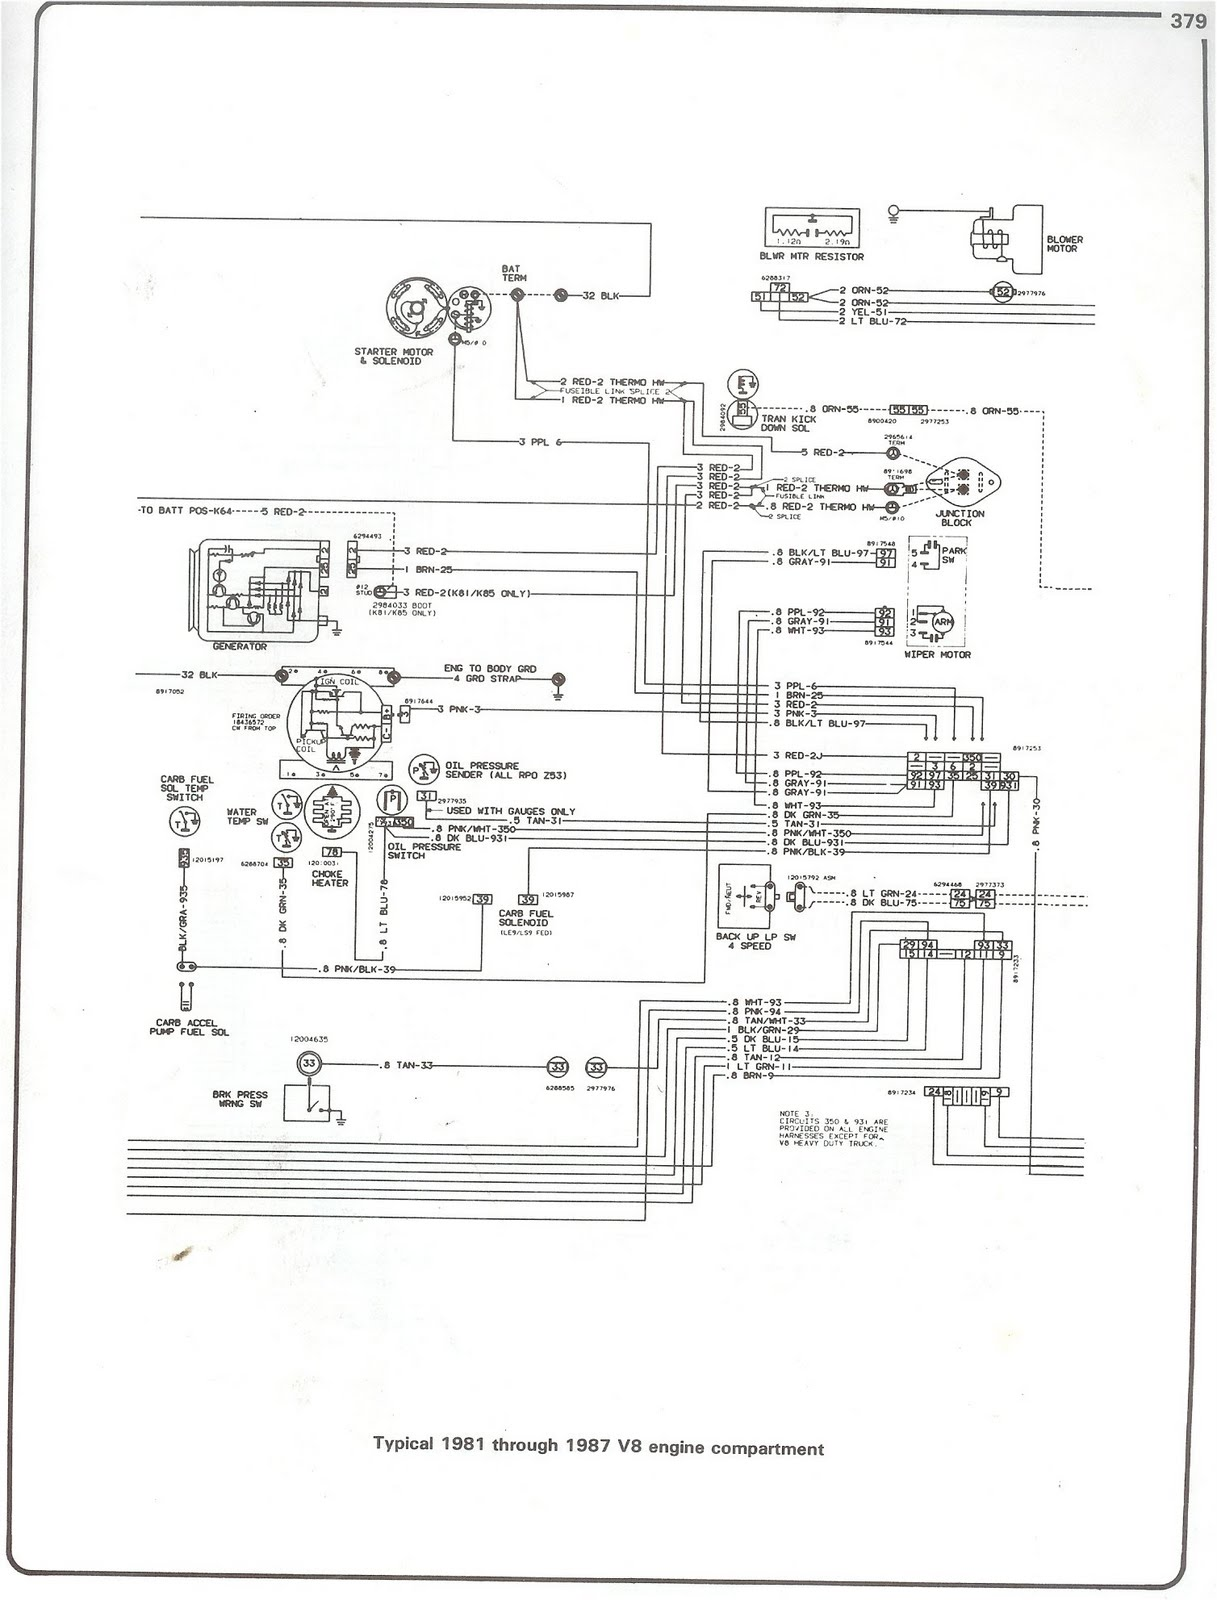 1955 chevy 2nd series truck wiring diagram manual reprint